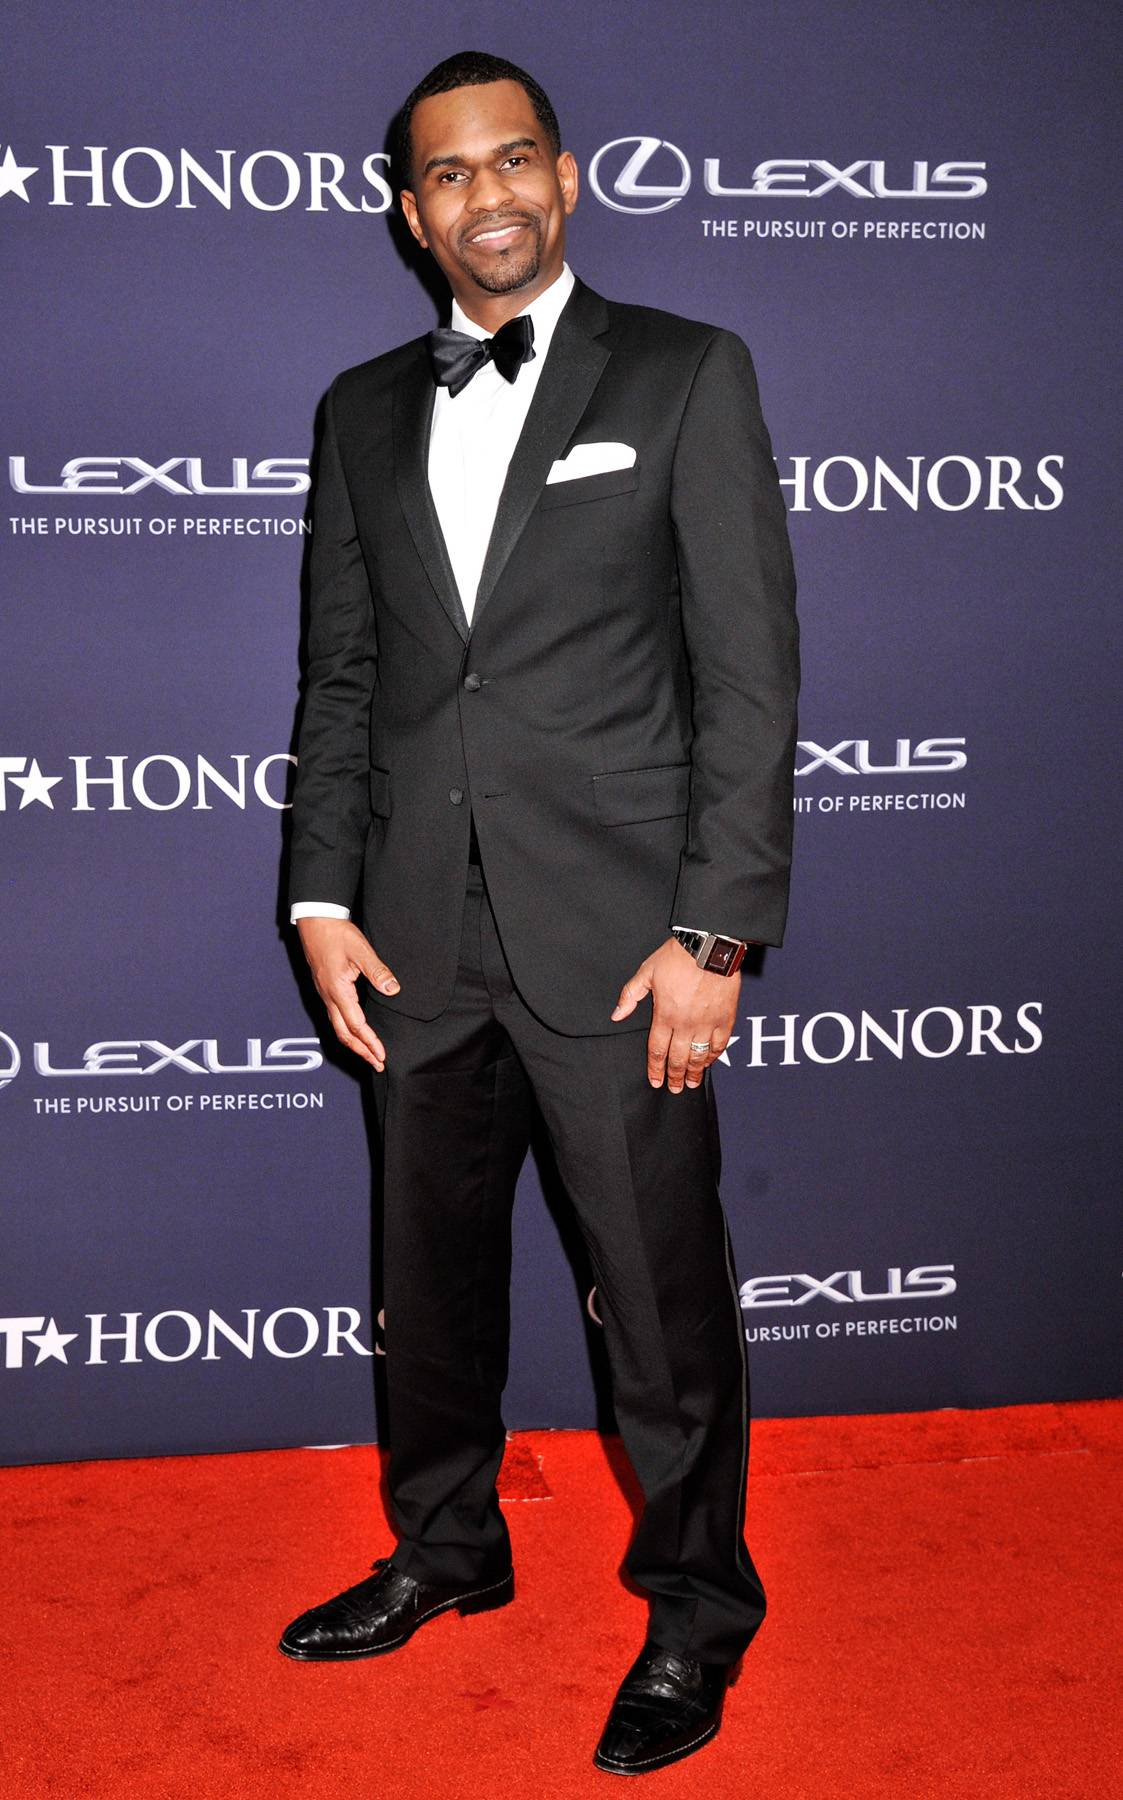 Digital and Daring  - The BET Honors Digital Special Recognition Award goes to Kwame Simmons, who dares to be different with some silly faces on the carpet. (Photo: Kris Connor/BET/Getty Images for BET)